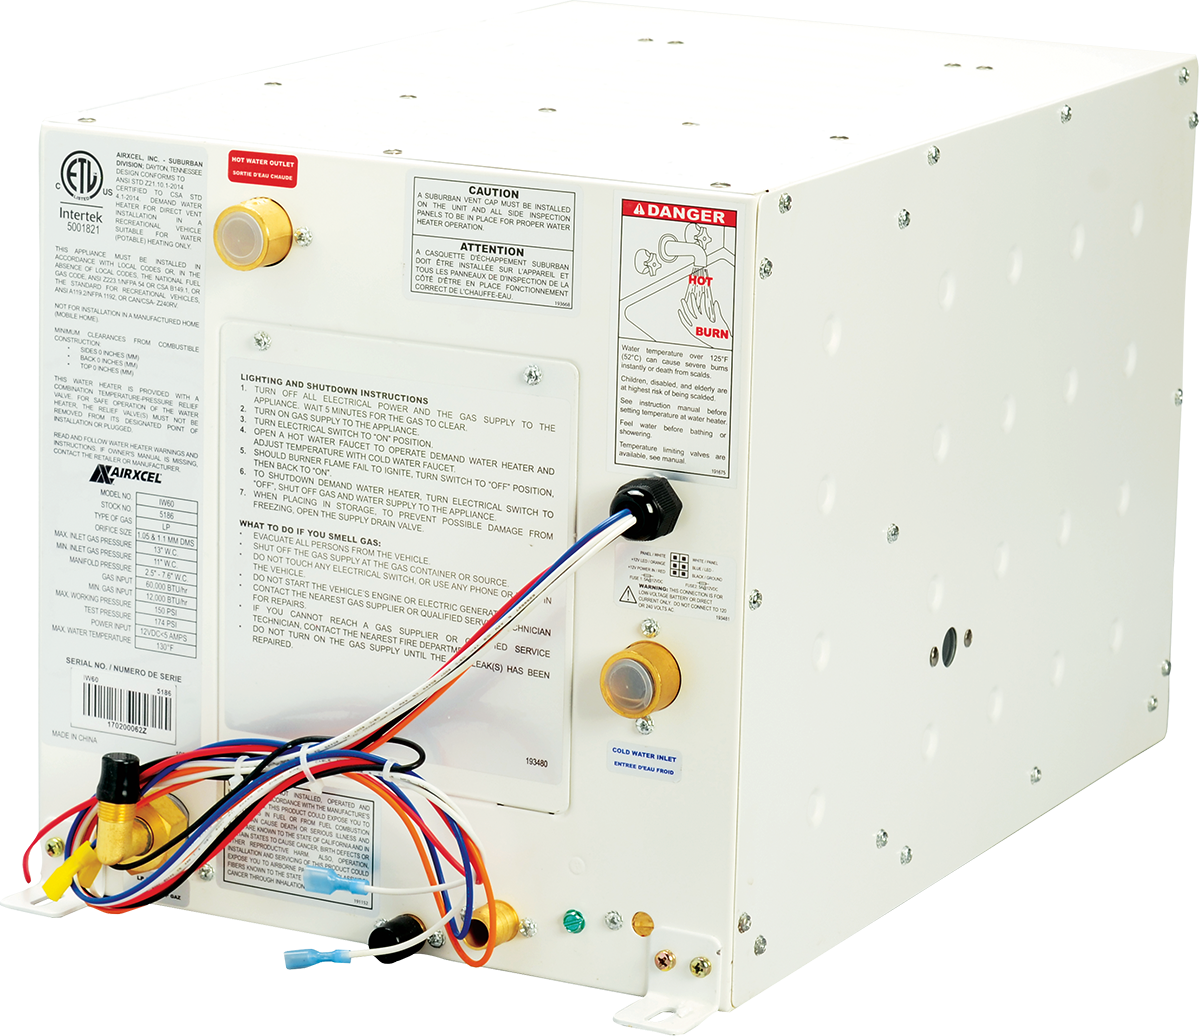 Nautilus On Demand Water Heater Airxcel Shower Of Sparks Wiring Diagram 5186a Odwh 01 02 03 04 05 06